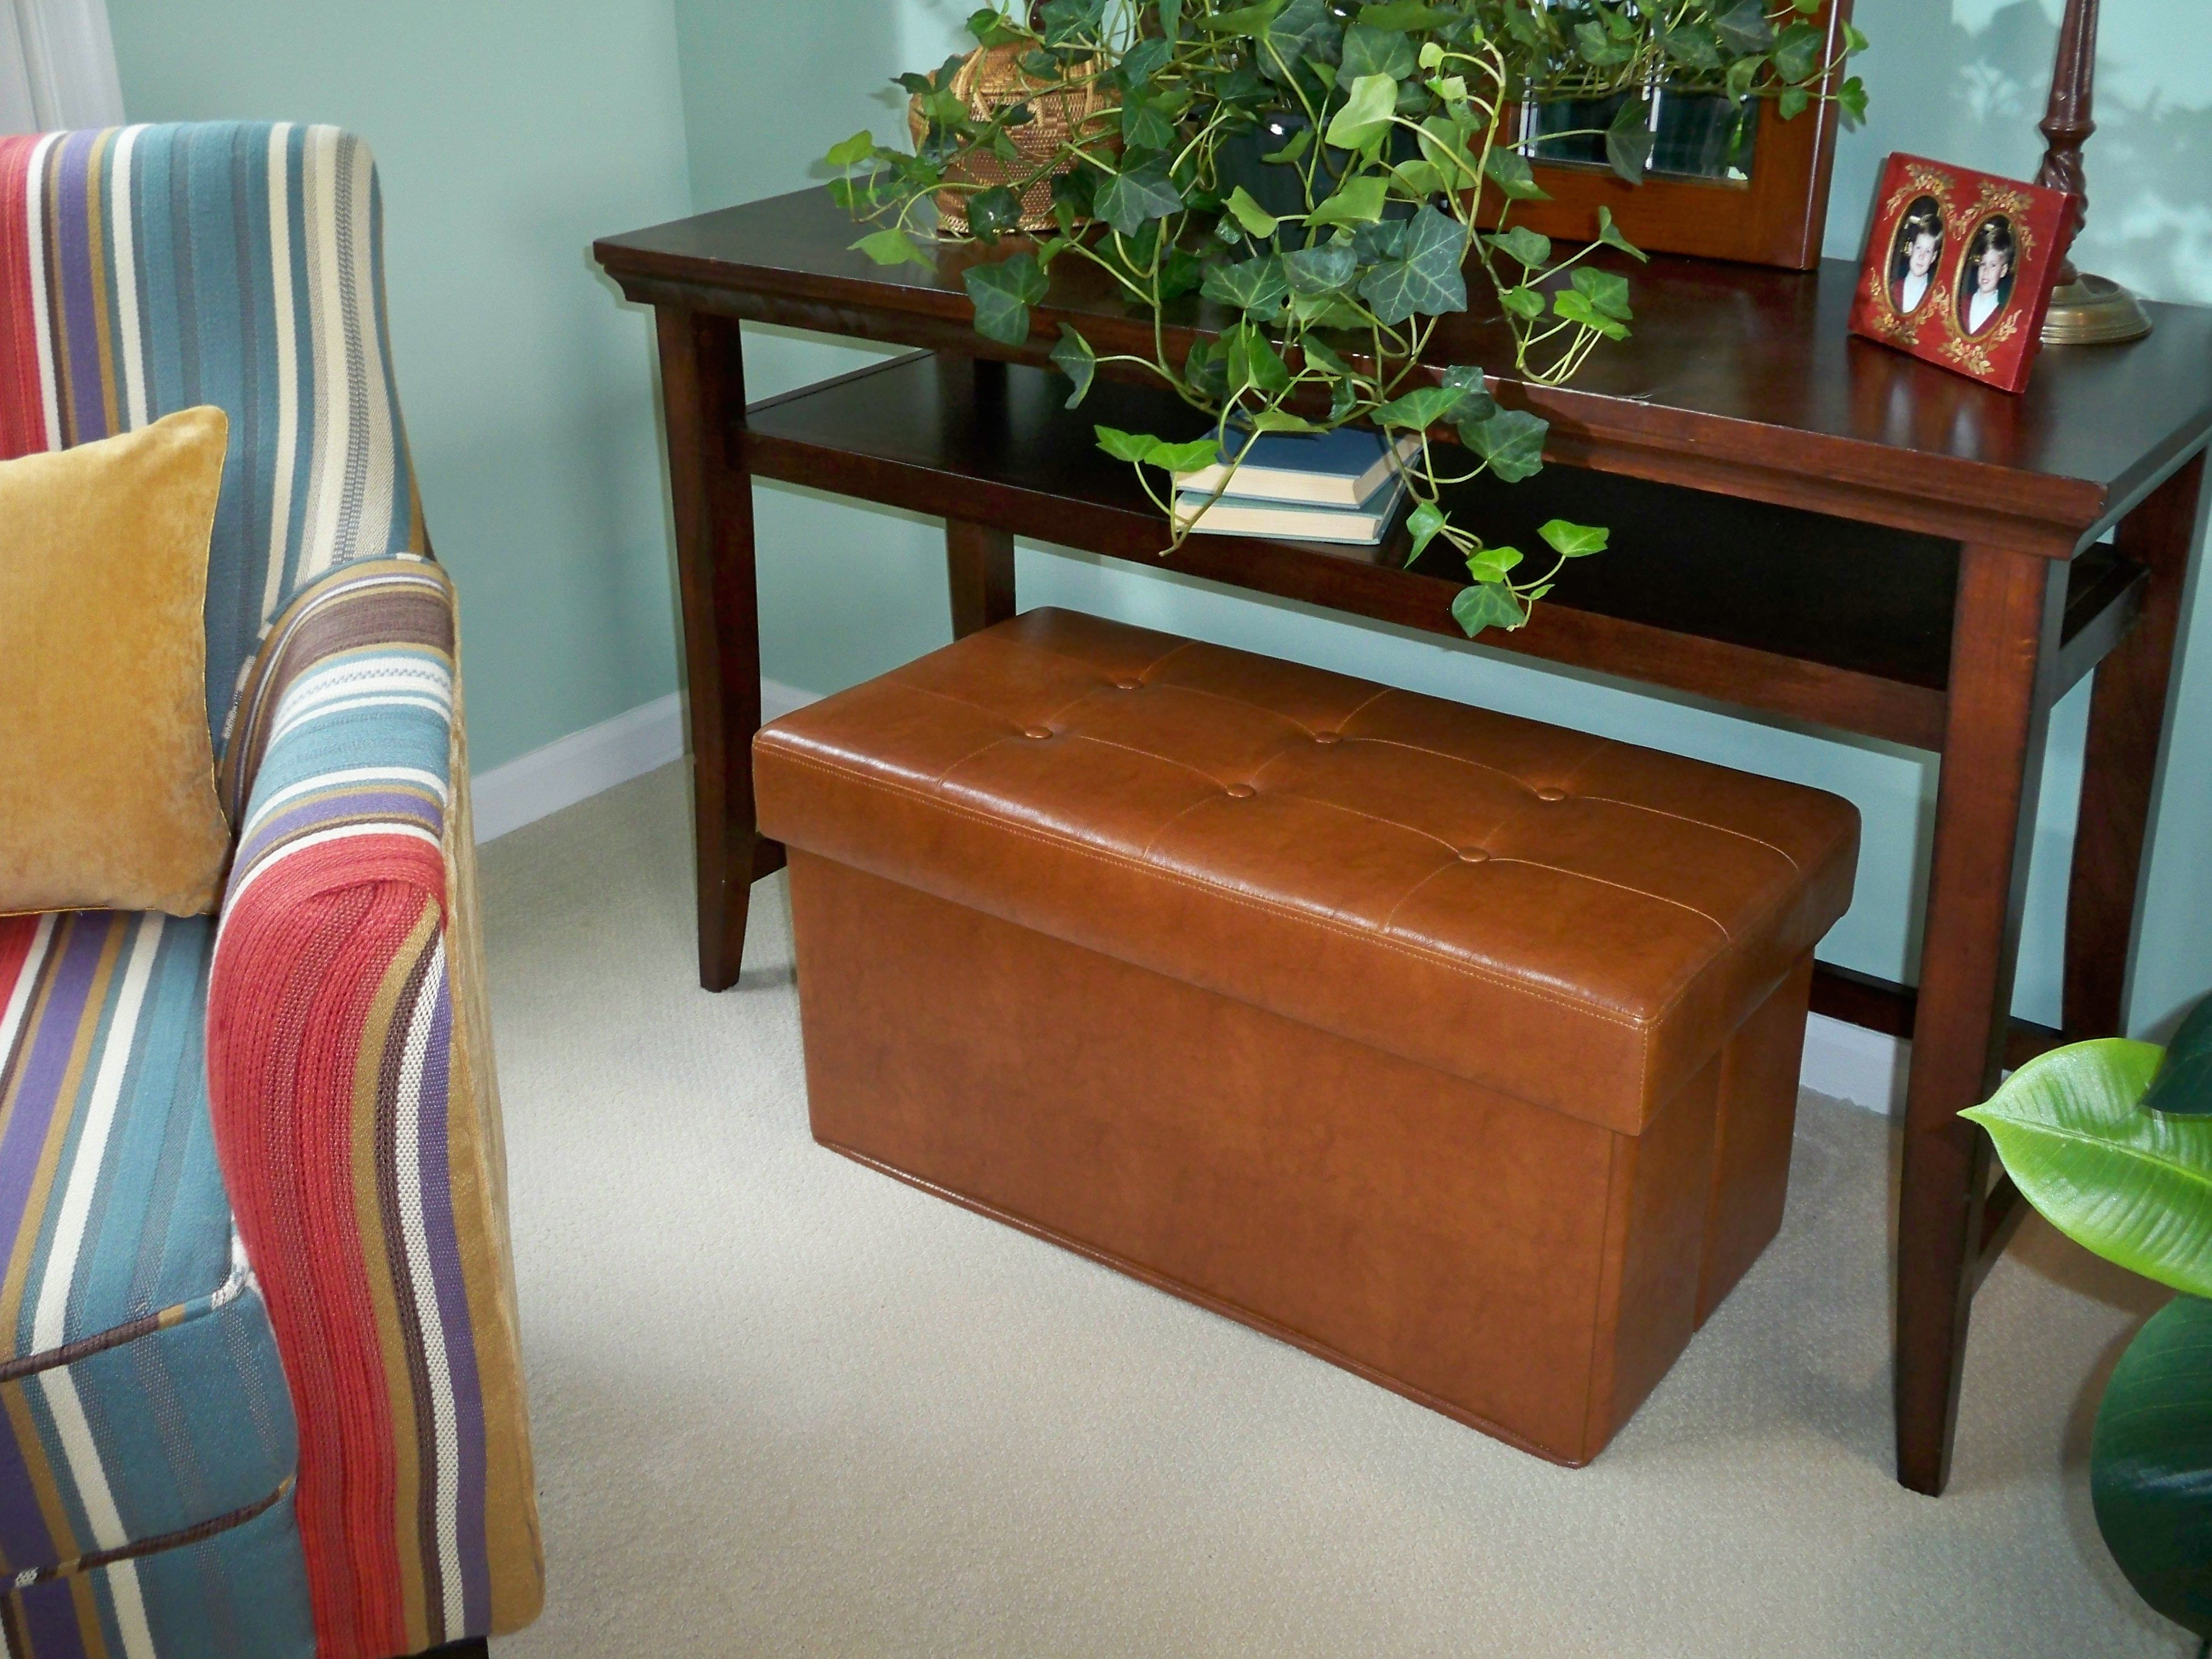 Incredible Faux Leather Collapsible Bench By Valerie H19505 Home Alphanode Cool Chair Designs And Ideas Alphanodeonline